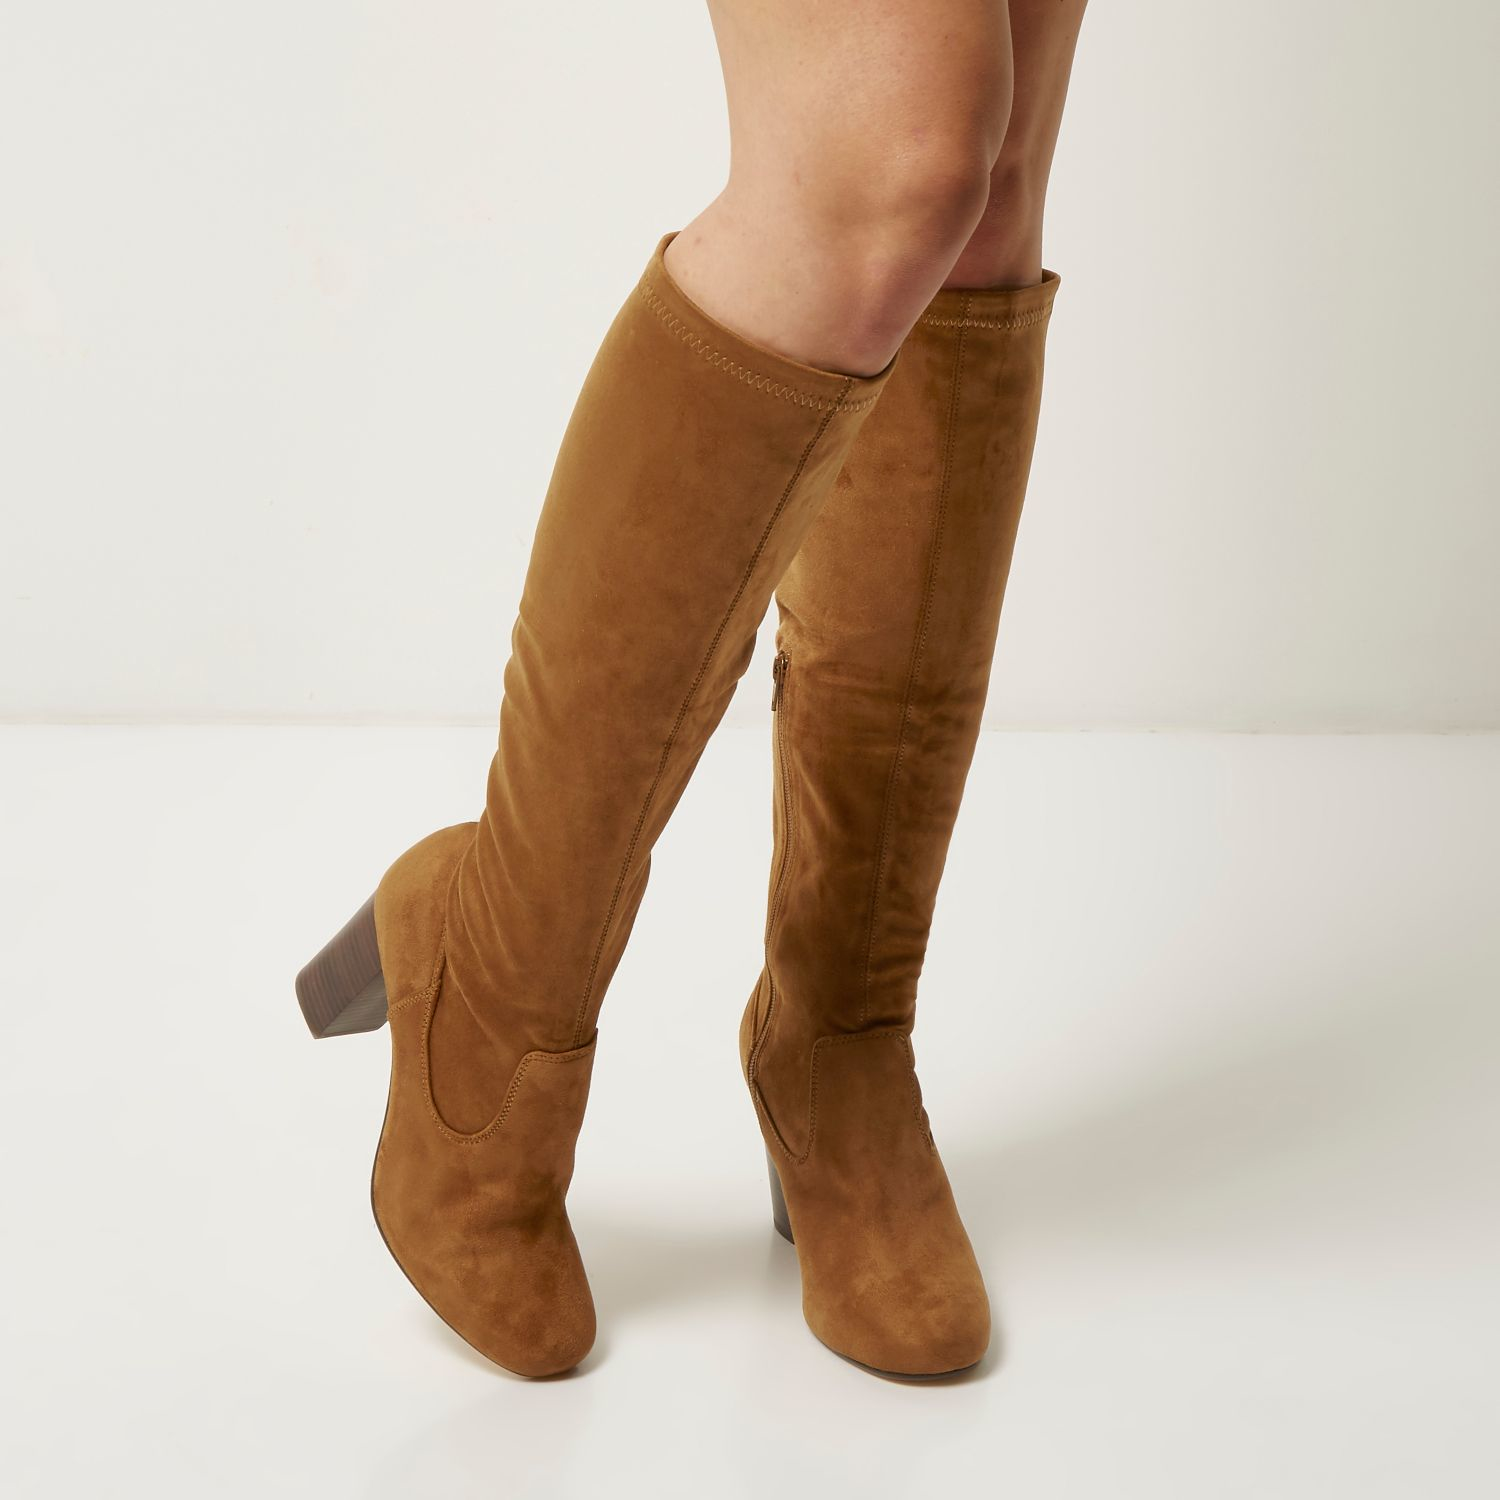 e492b558ec3 Lyst - River Island Tan Faux Suede Heeled Knee High Boots in Brown